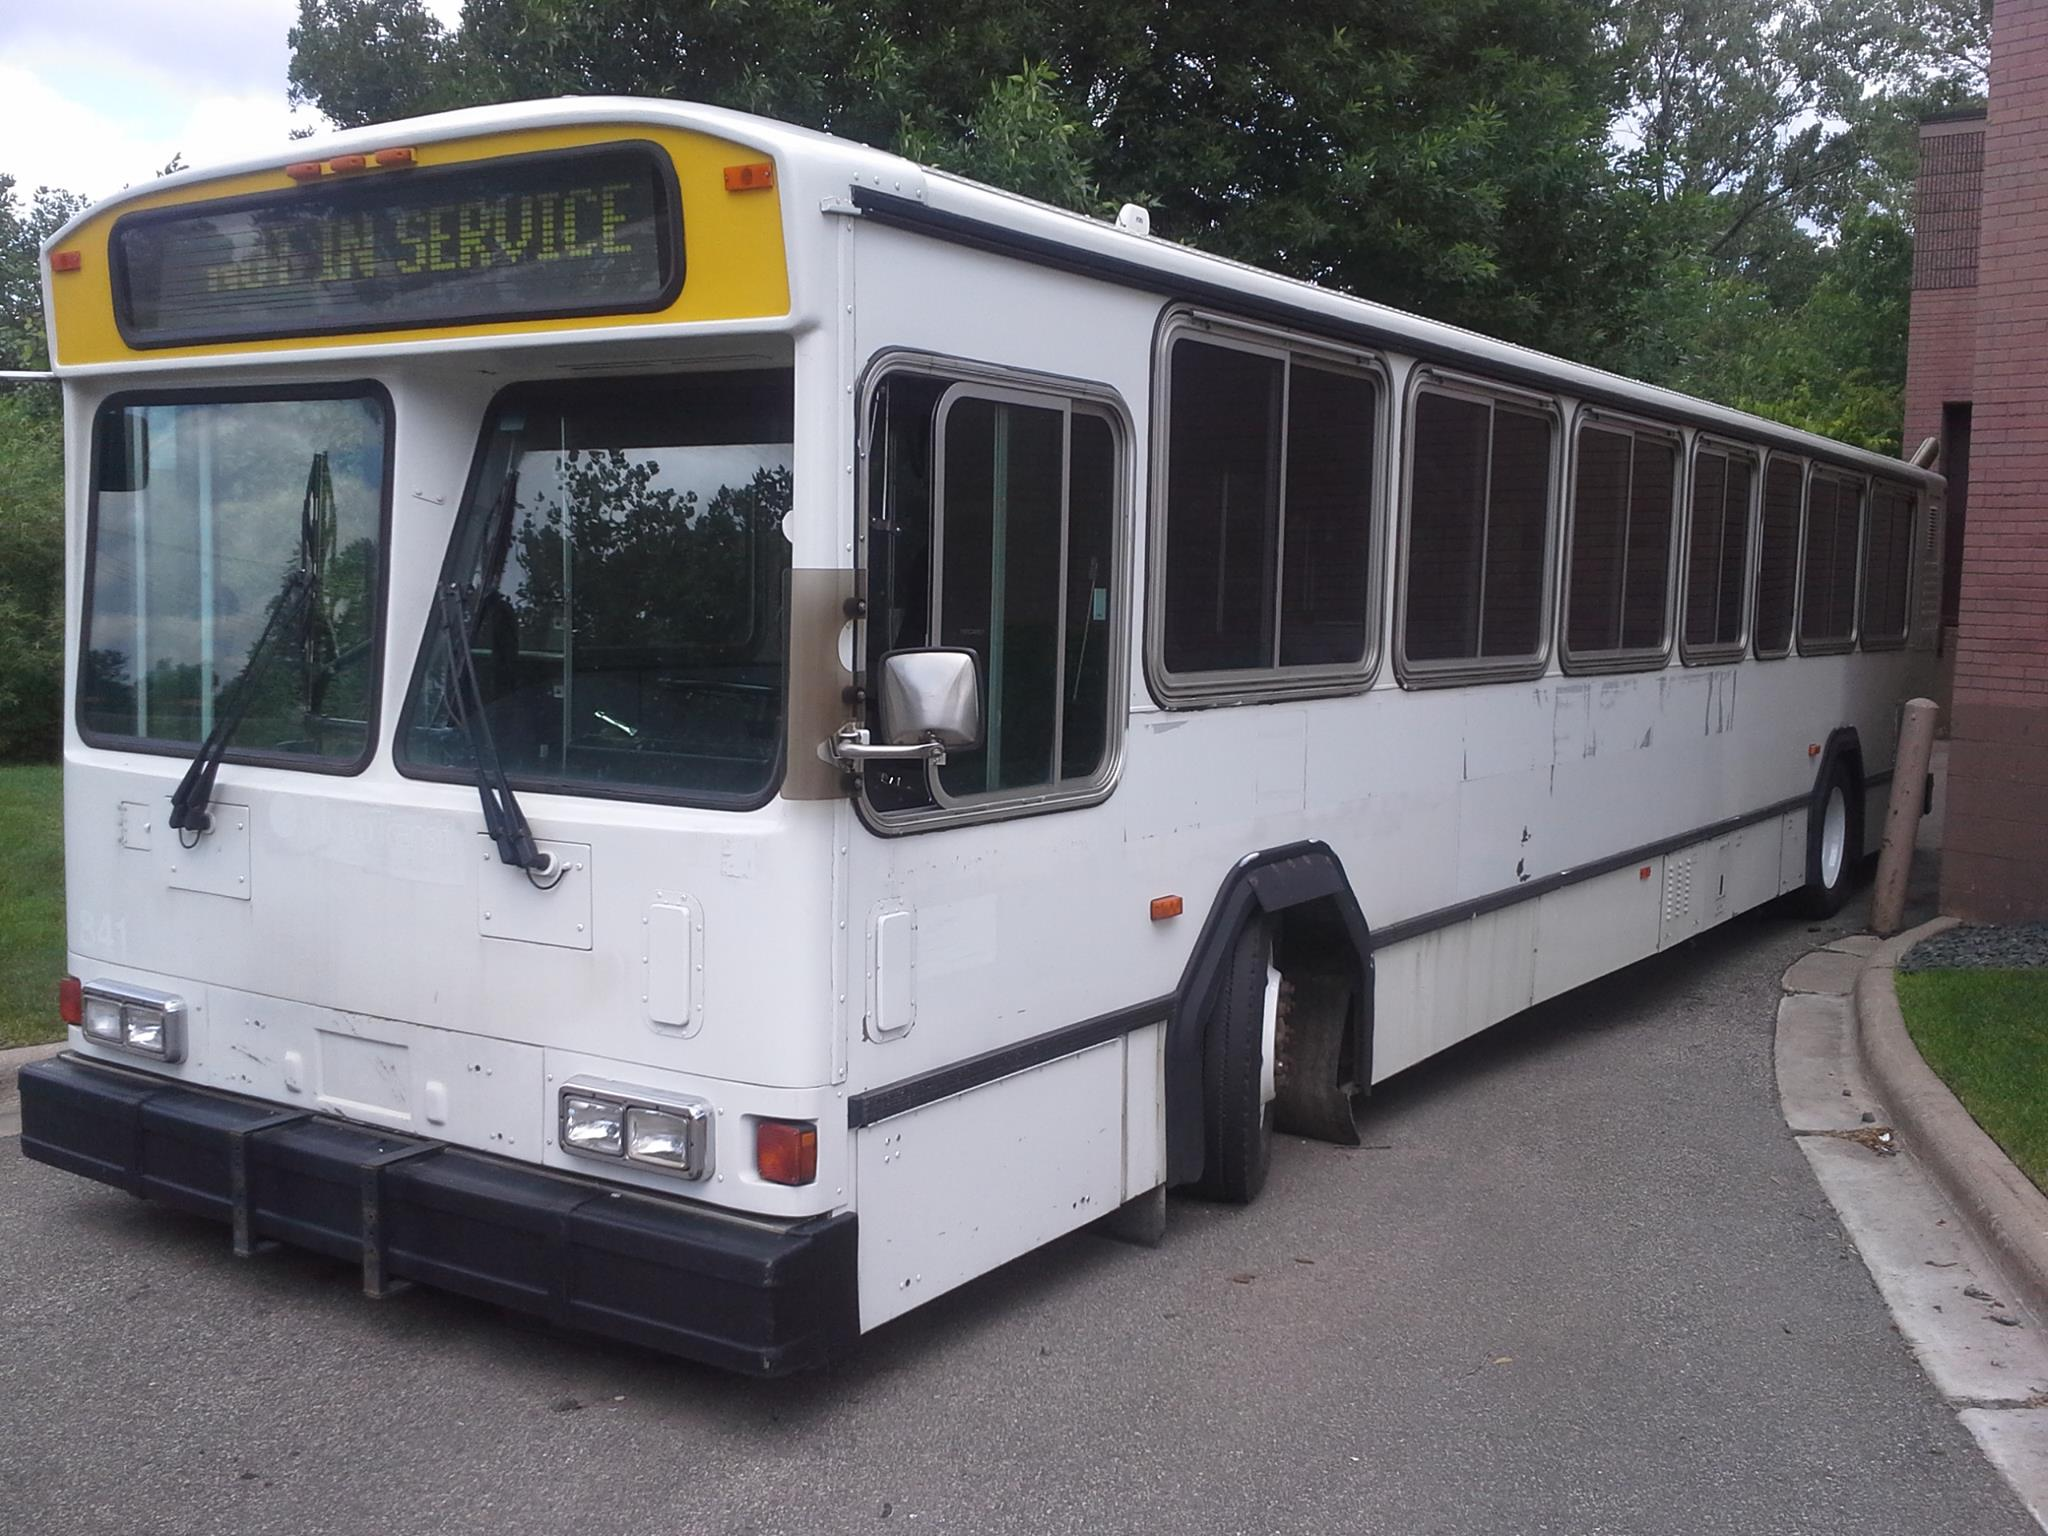 (Photo courtesy of Twin Cities Mobile Market) Soon this empty bus will be carting around food to areas that have poor access to fresh produce and other healthy whole foods.